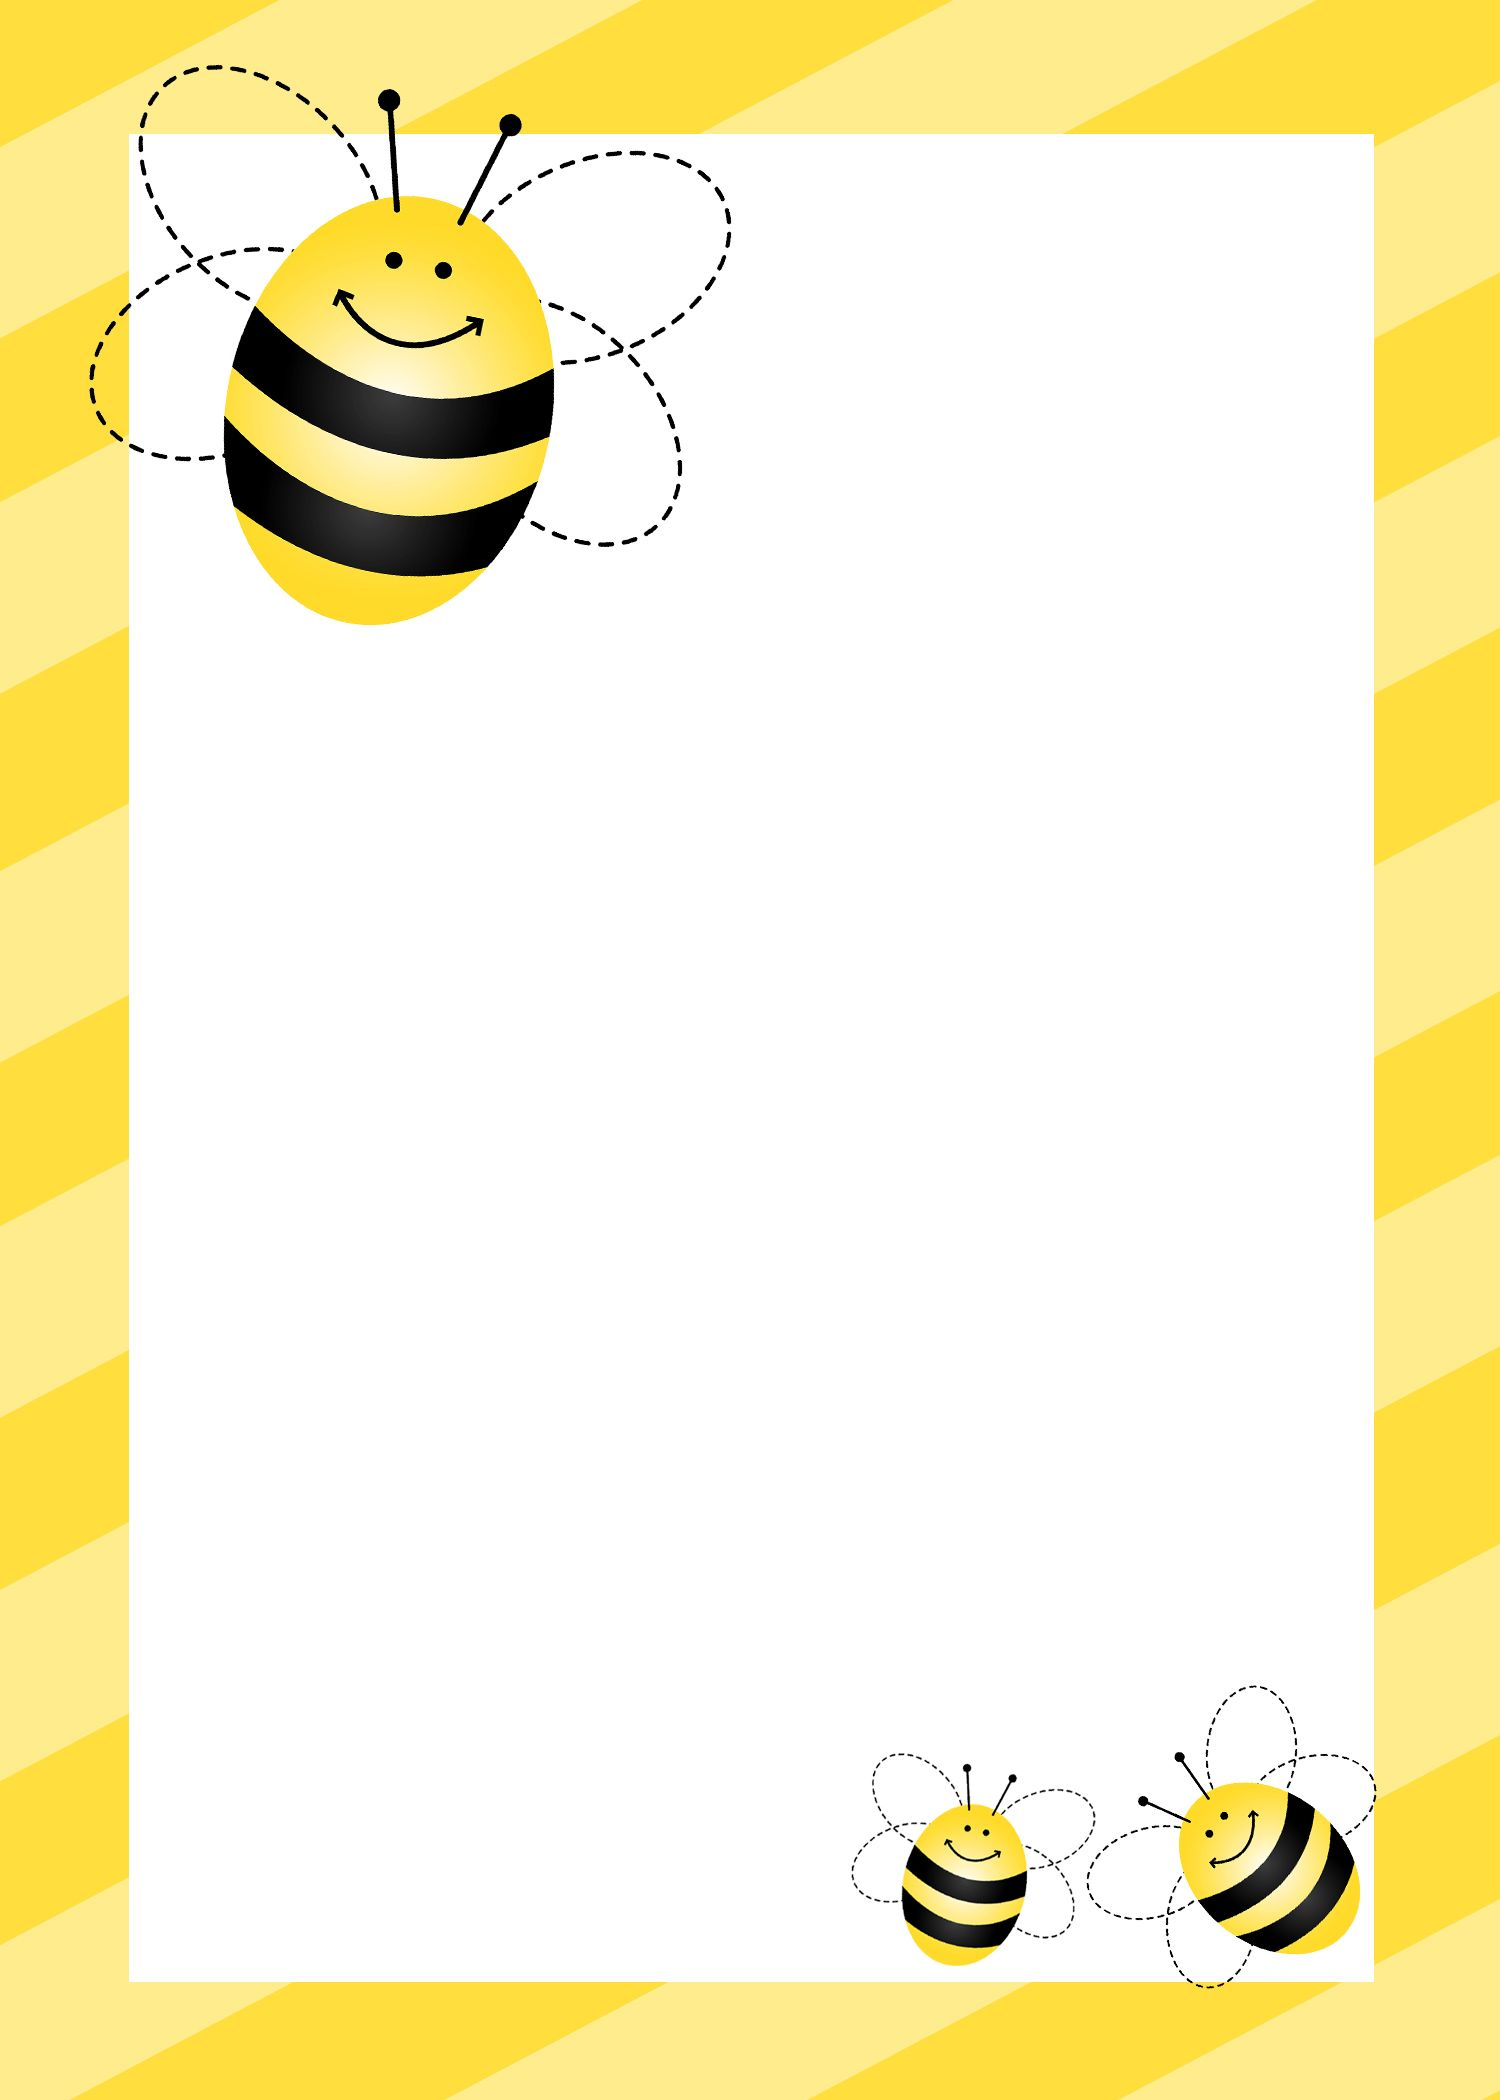 Bumblebee themed birthday party with free printables bumble bees bumblebee themed birthday party with free printables how to nest for less leaf template printableprintable borderstationary spiritdancerdesigns Gallery